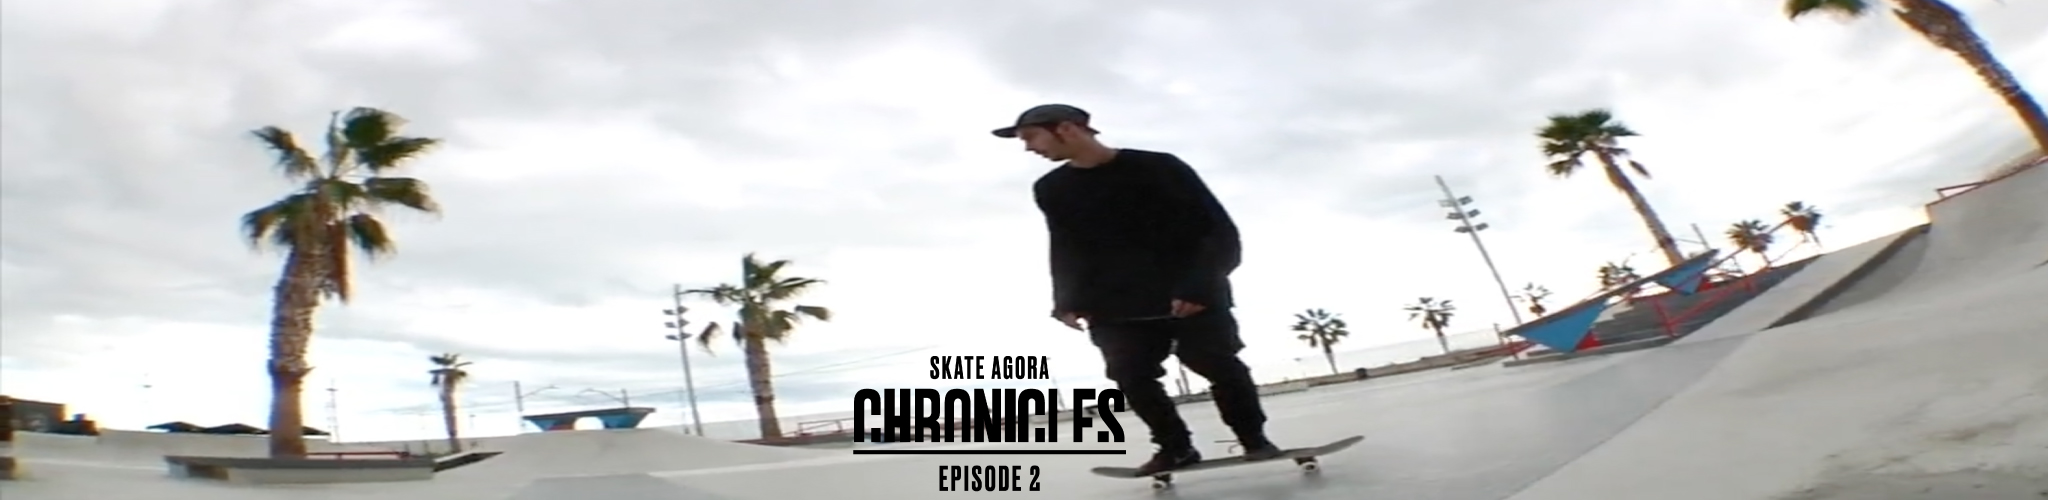 Skate Agora Chronicles Ep.2